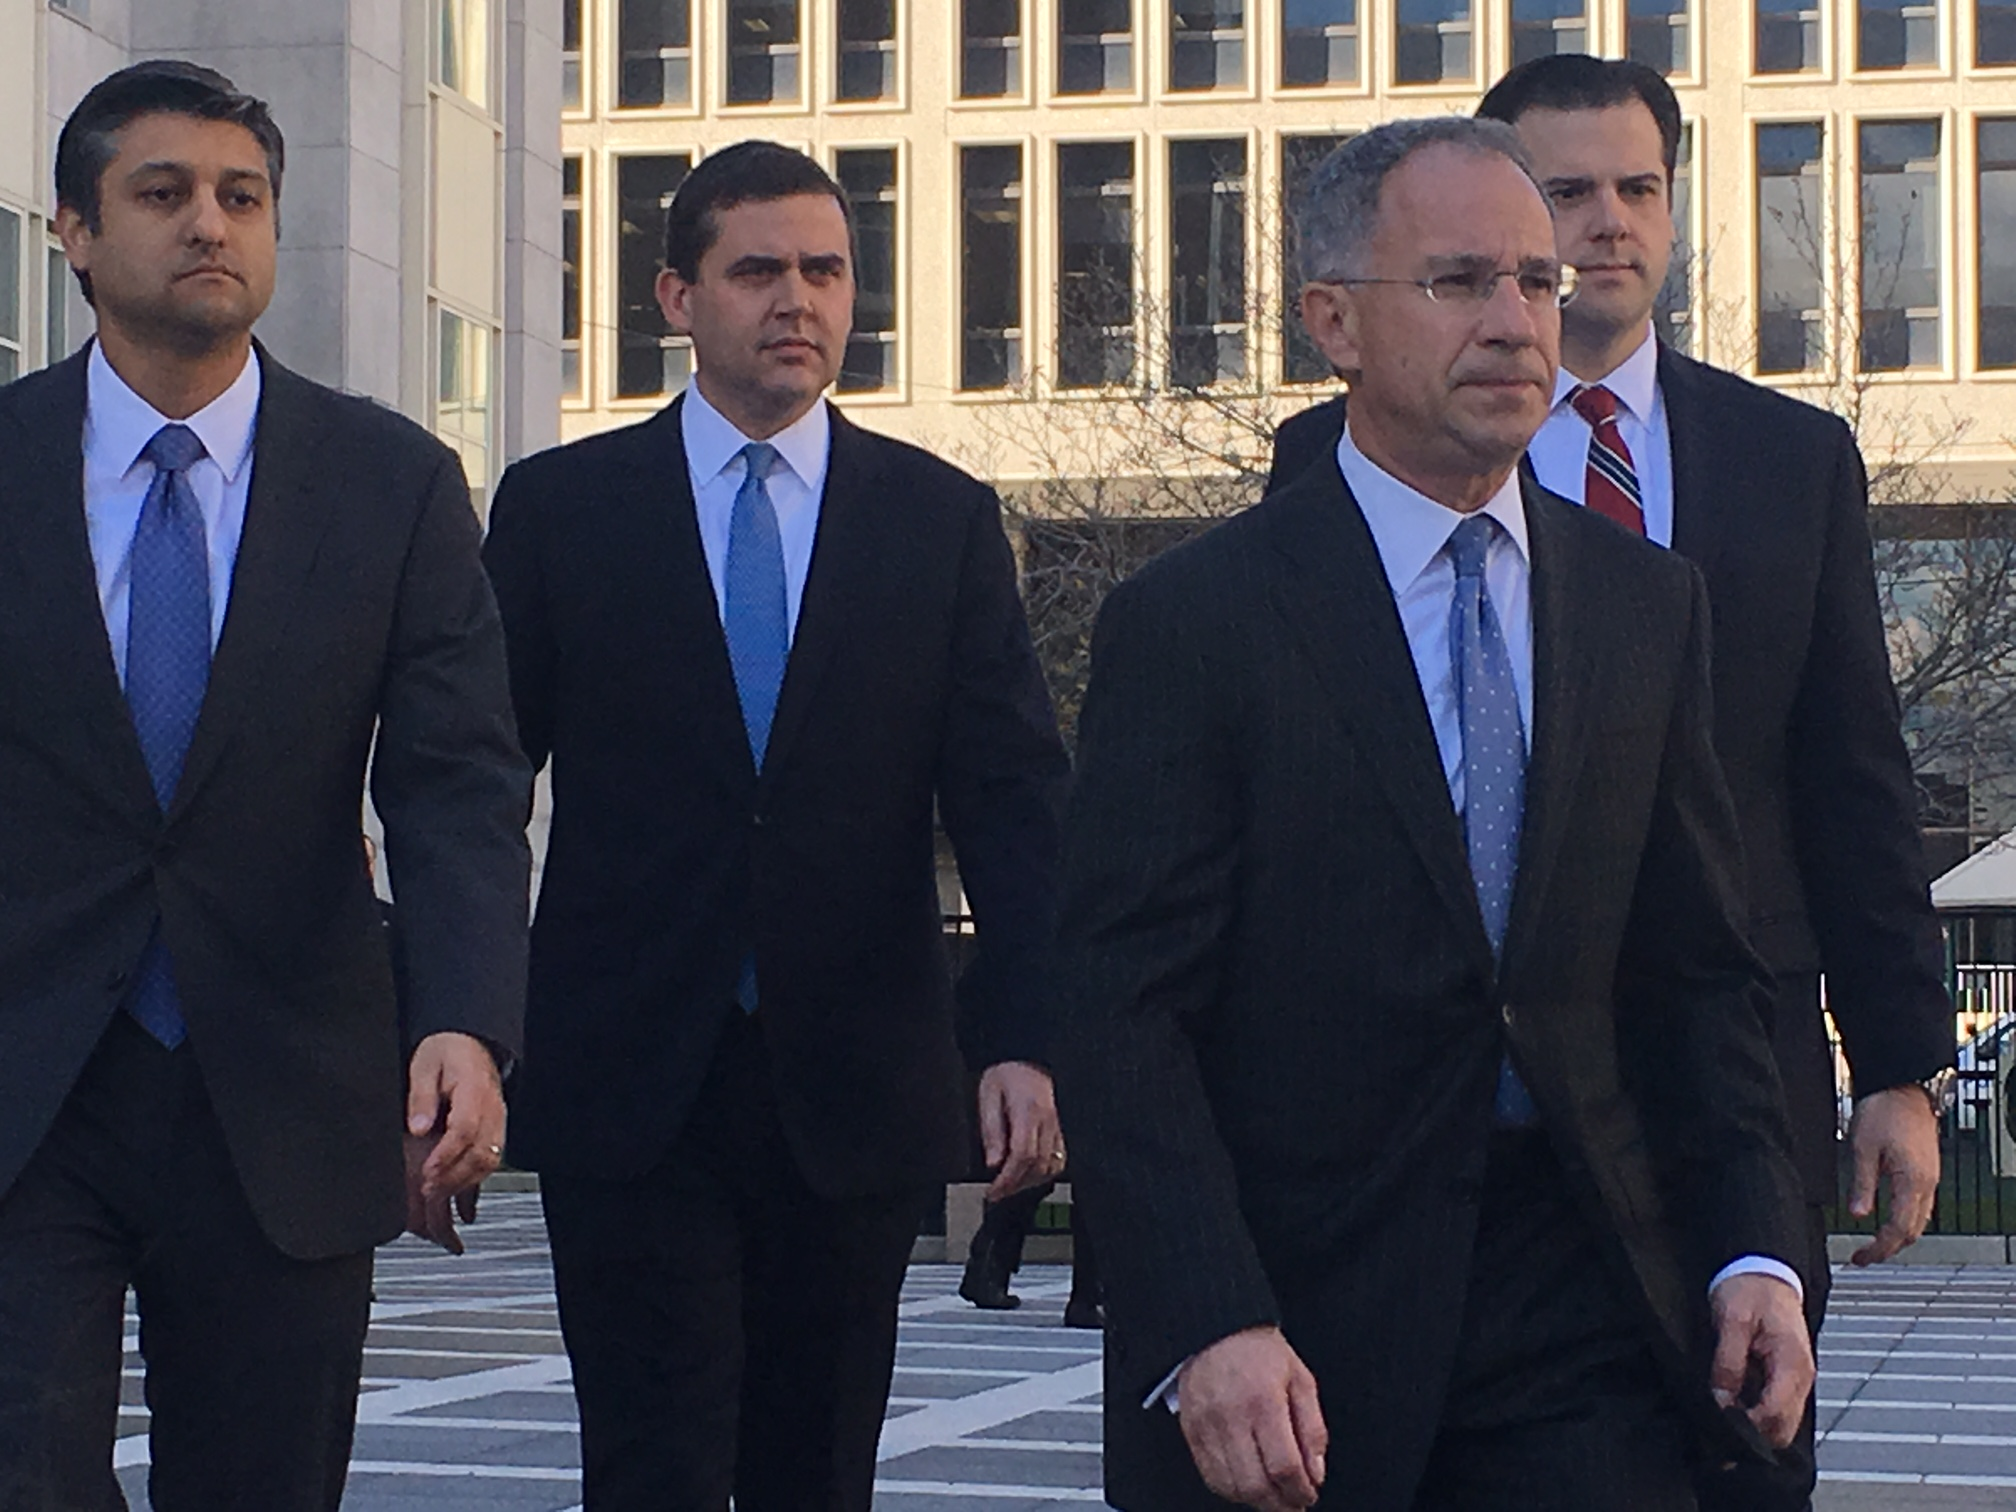 U.S. Attorney Paul Fishman and the three assistant prosecutors who represented the government during the trial approach reporters following the Bridgegate verdict.